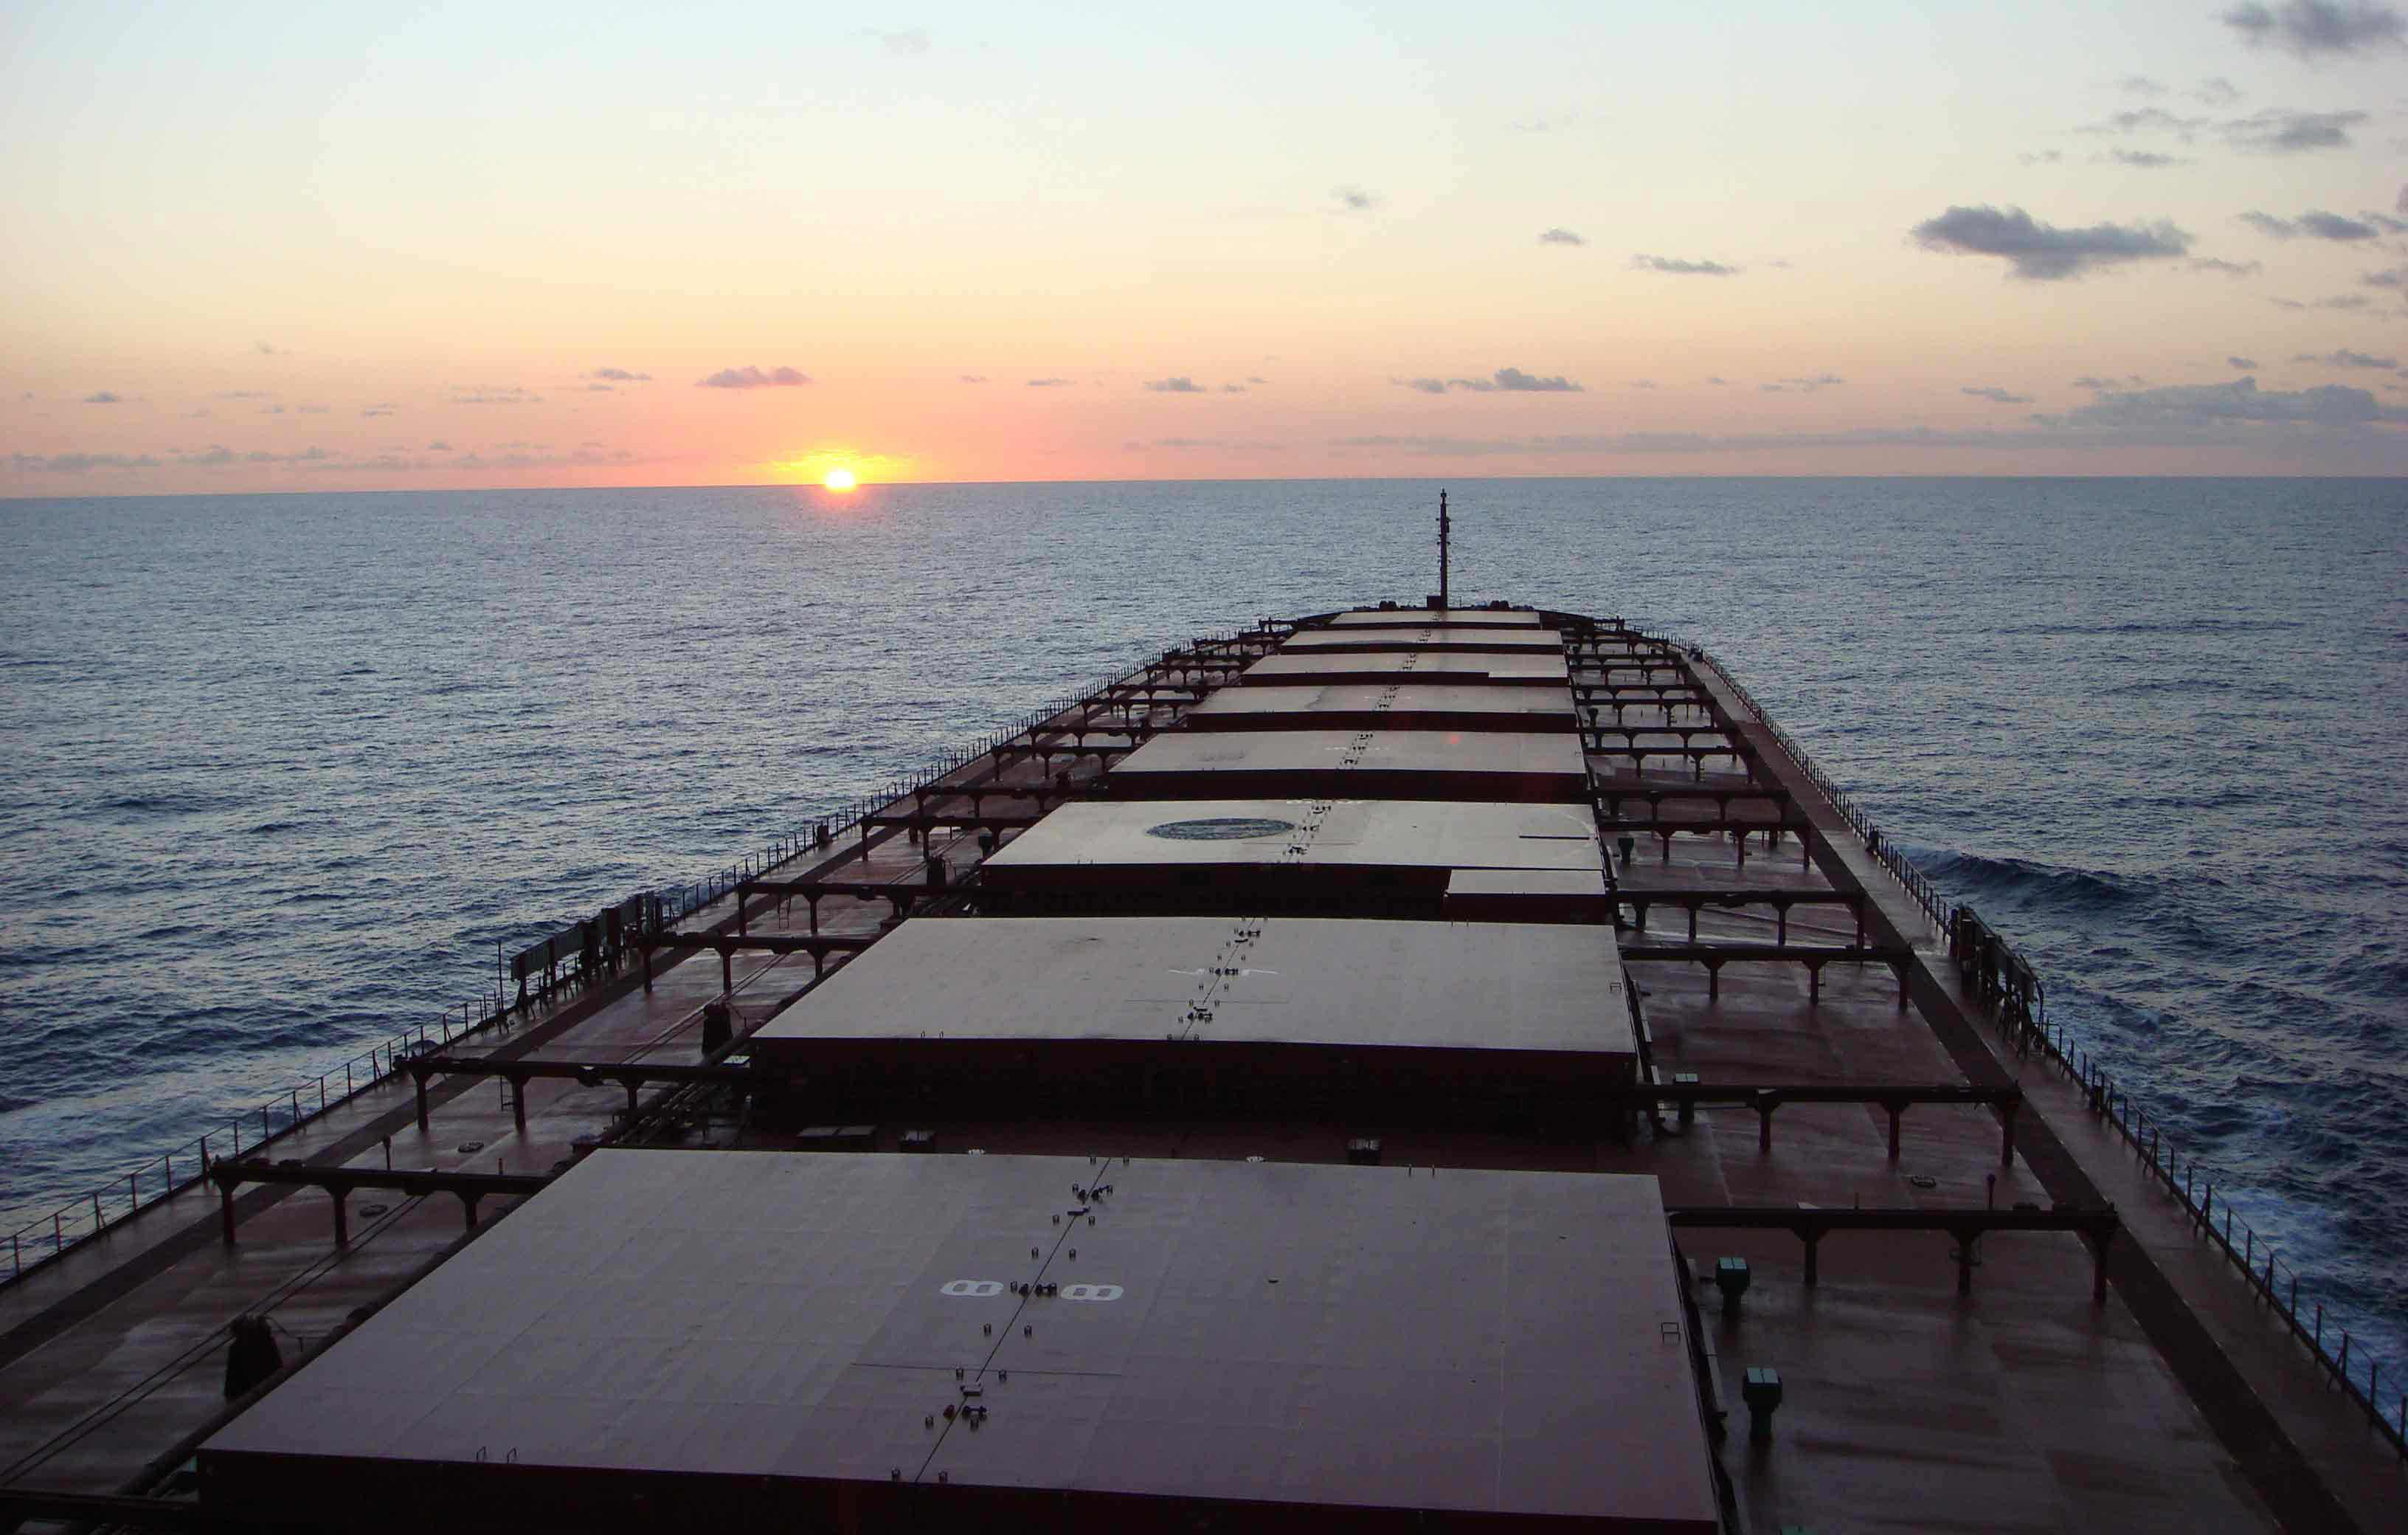 Sun setting behind an Ofer Global ship